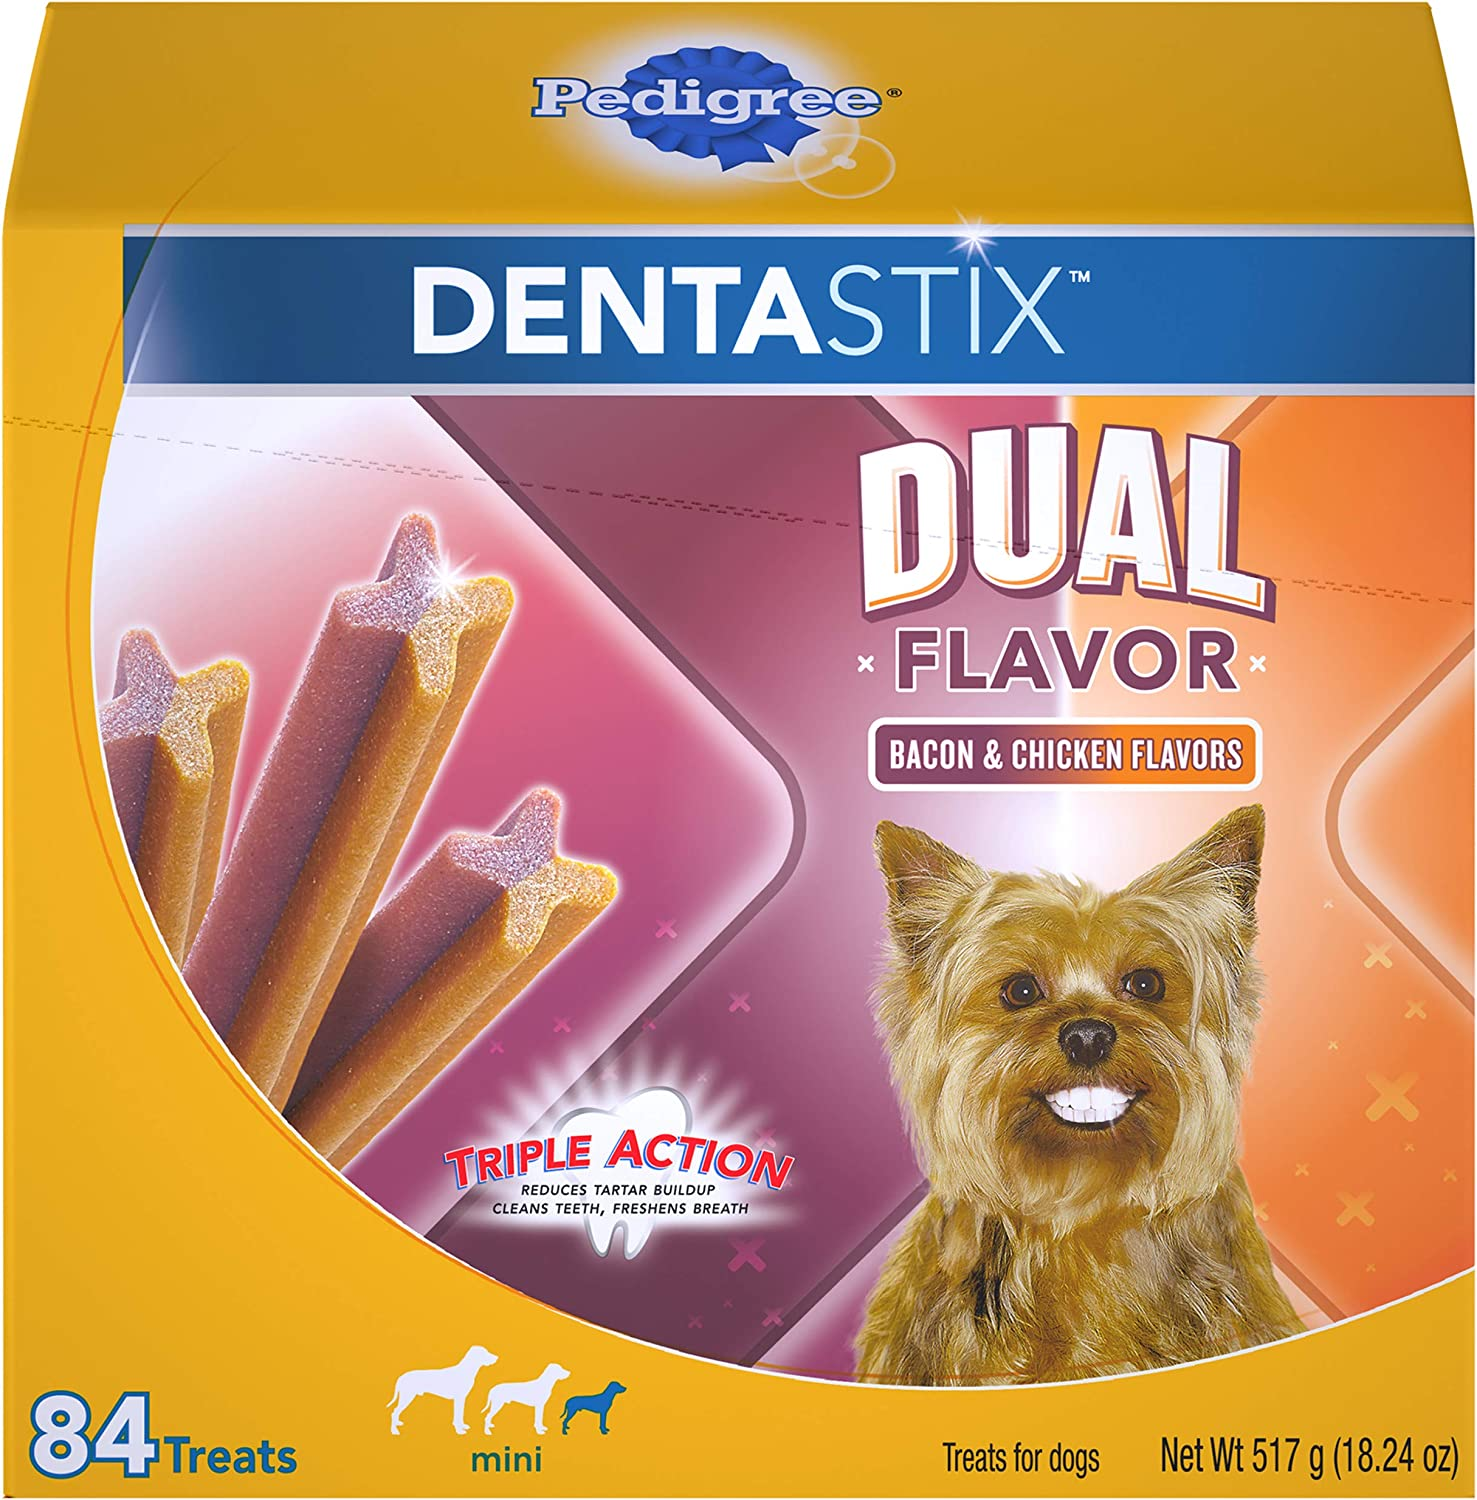 Pedigree DENTASTIX Adult & Puppy Toy/Small Treats for Dogs 5-20lbs.